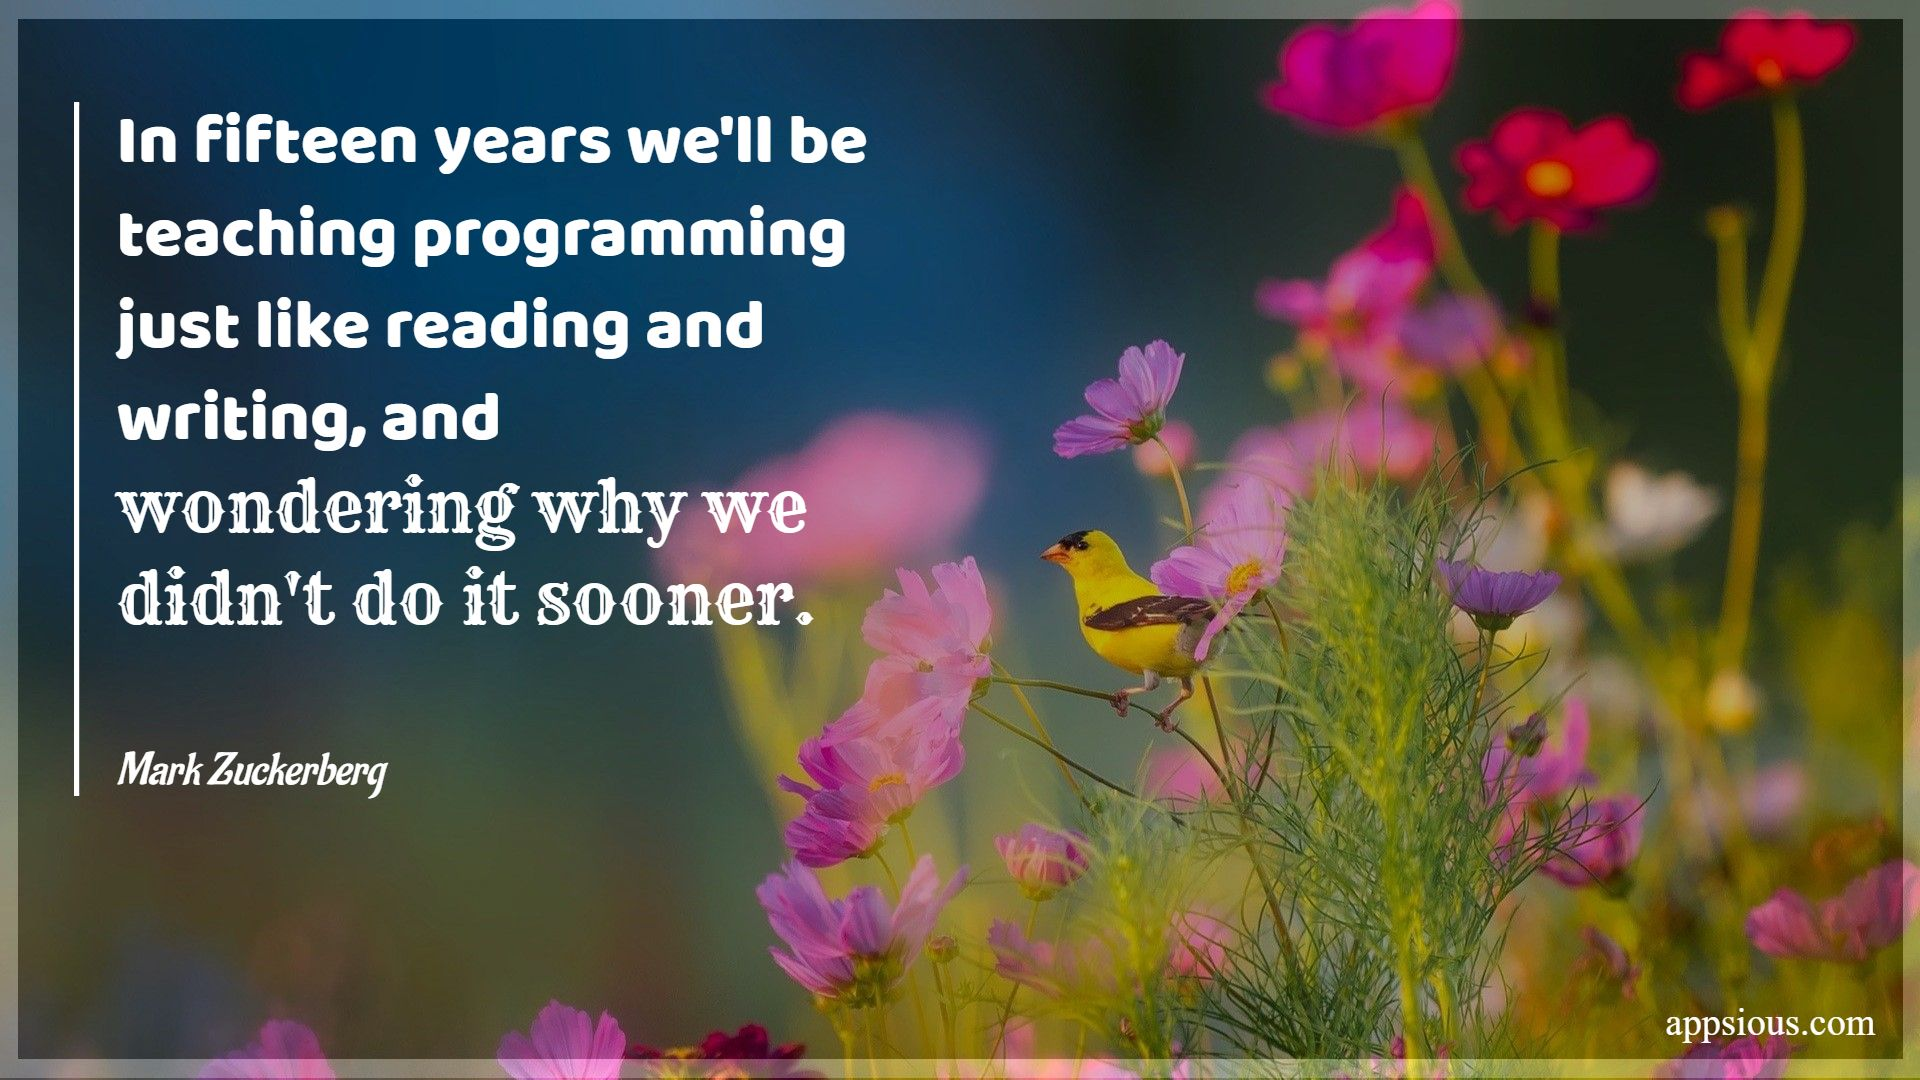 In fifteen years we'll be teaching programming just like reading and writing, and wondering why we didn't do it sooner.